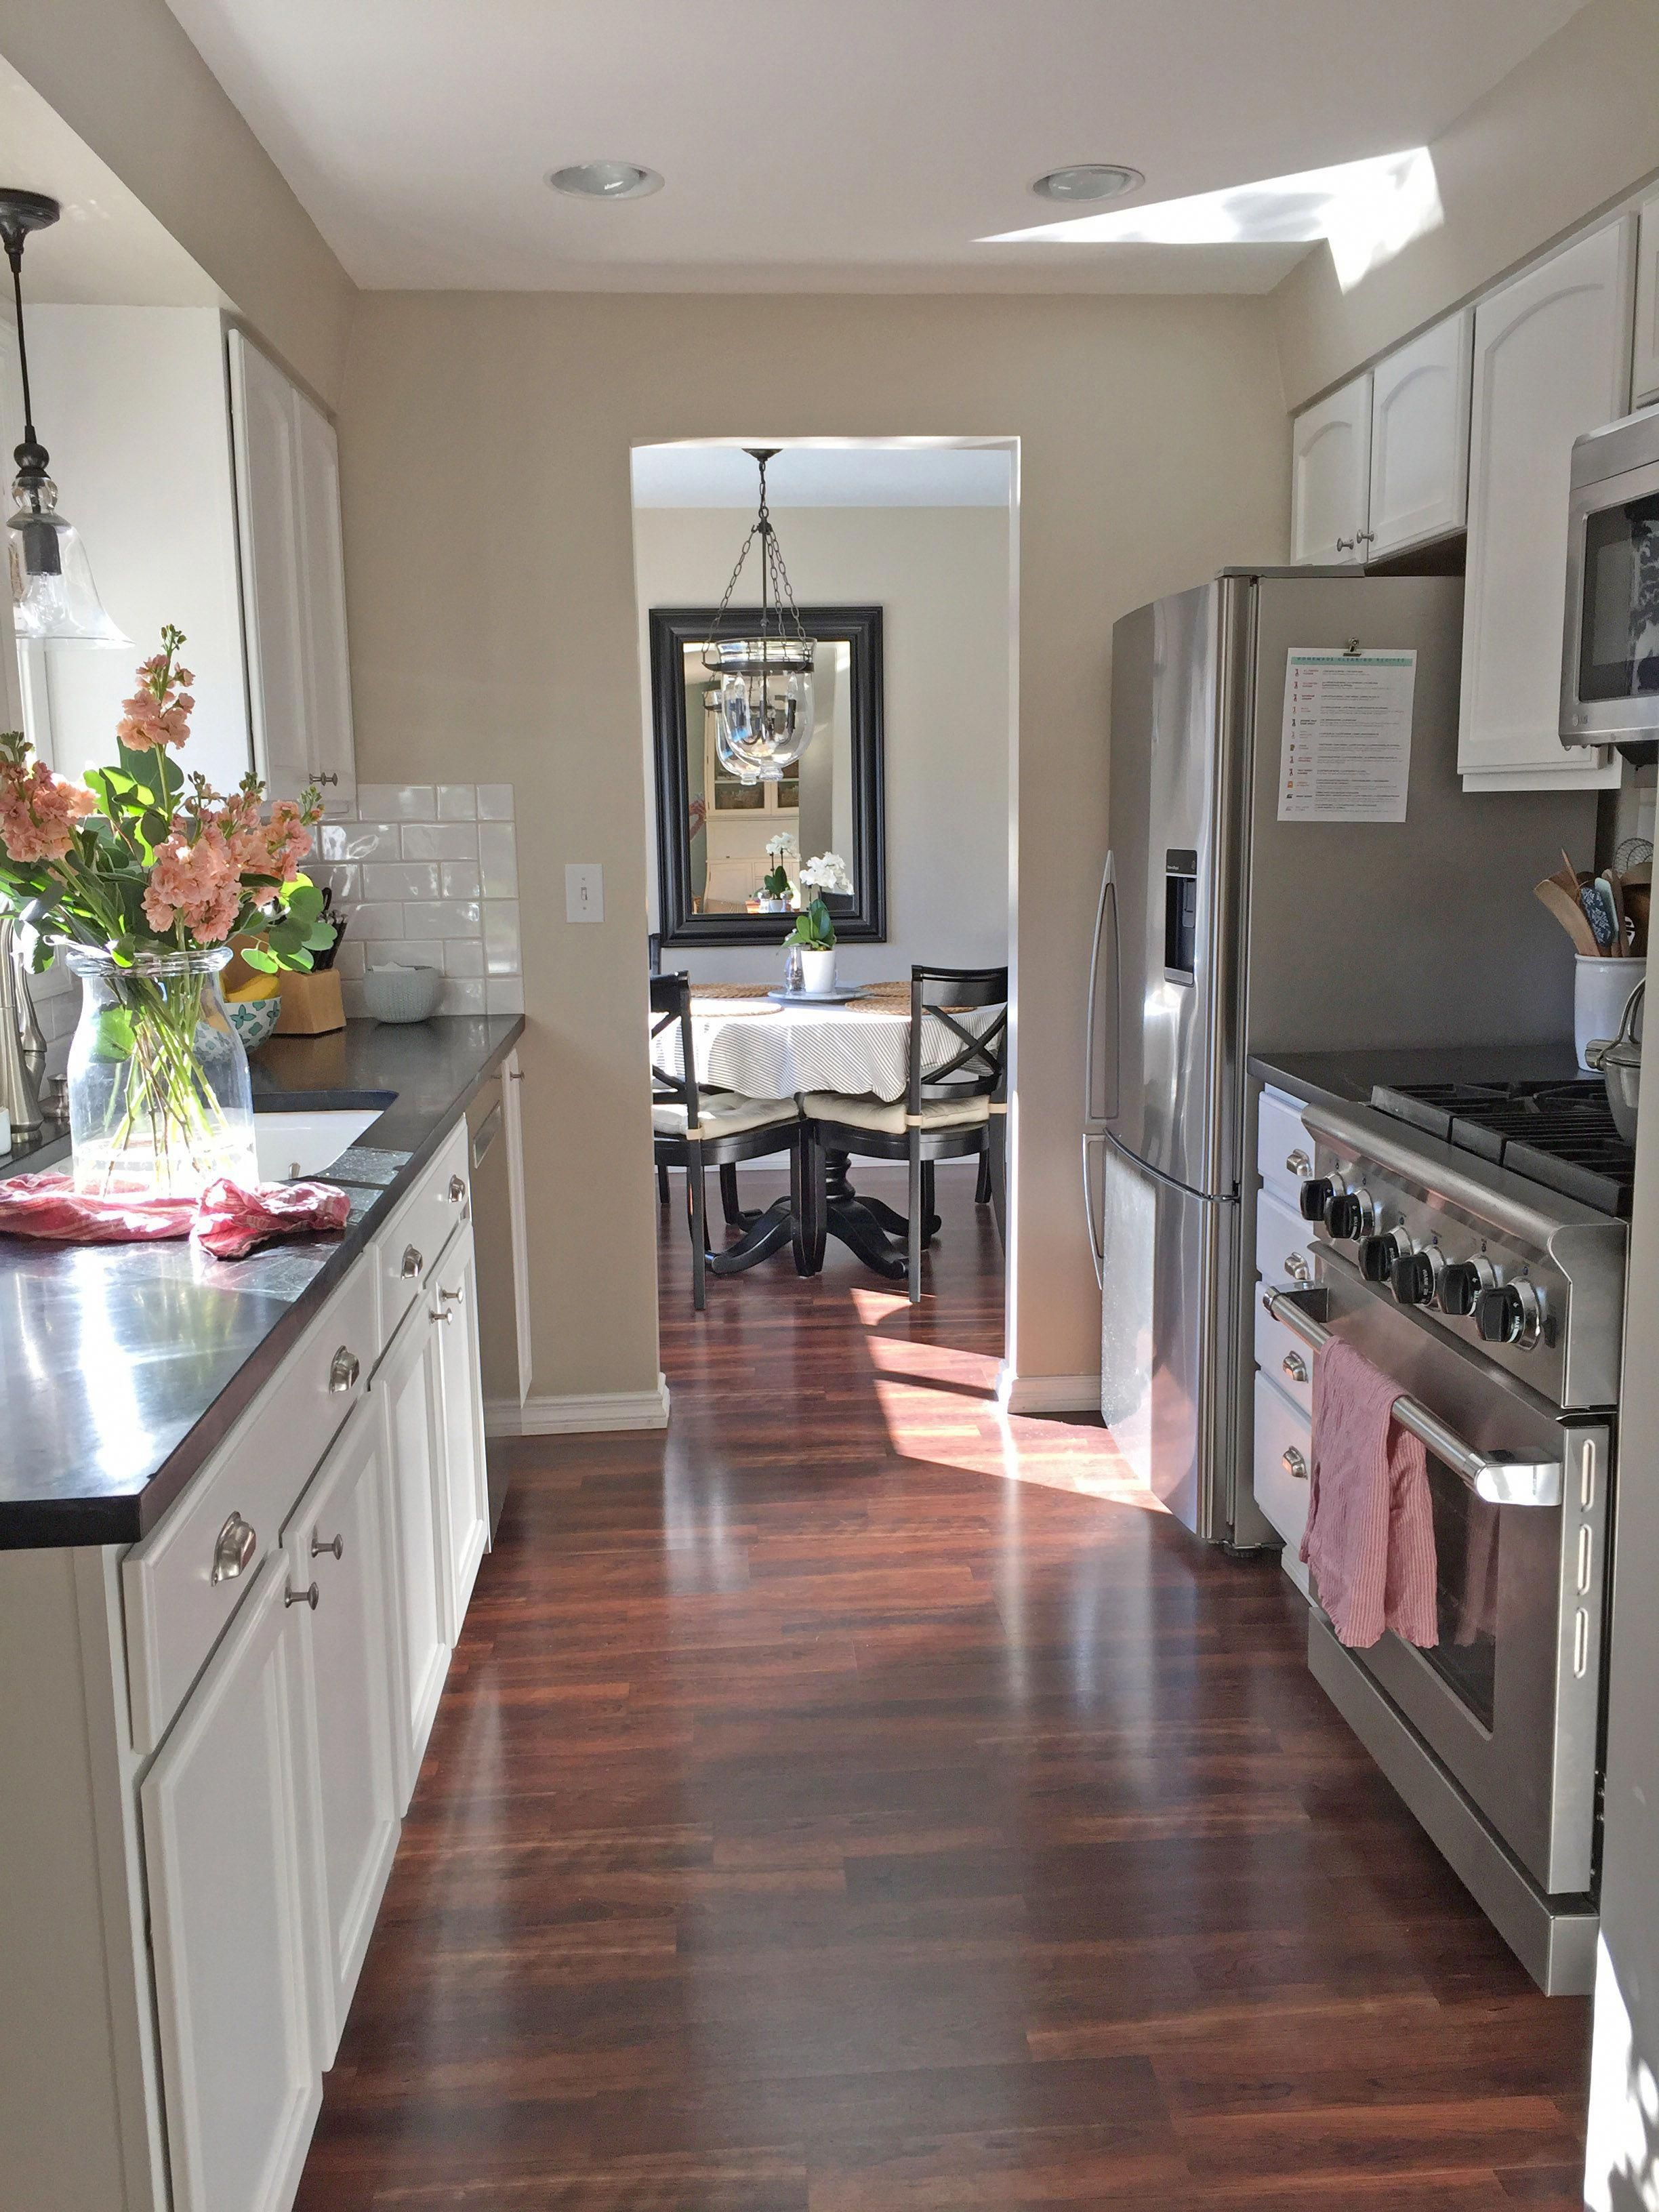 small galley kitchen tour smallkitchenremodelonabudget on kitchen remodeling ideas and designs lowe s id=71741